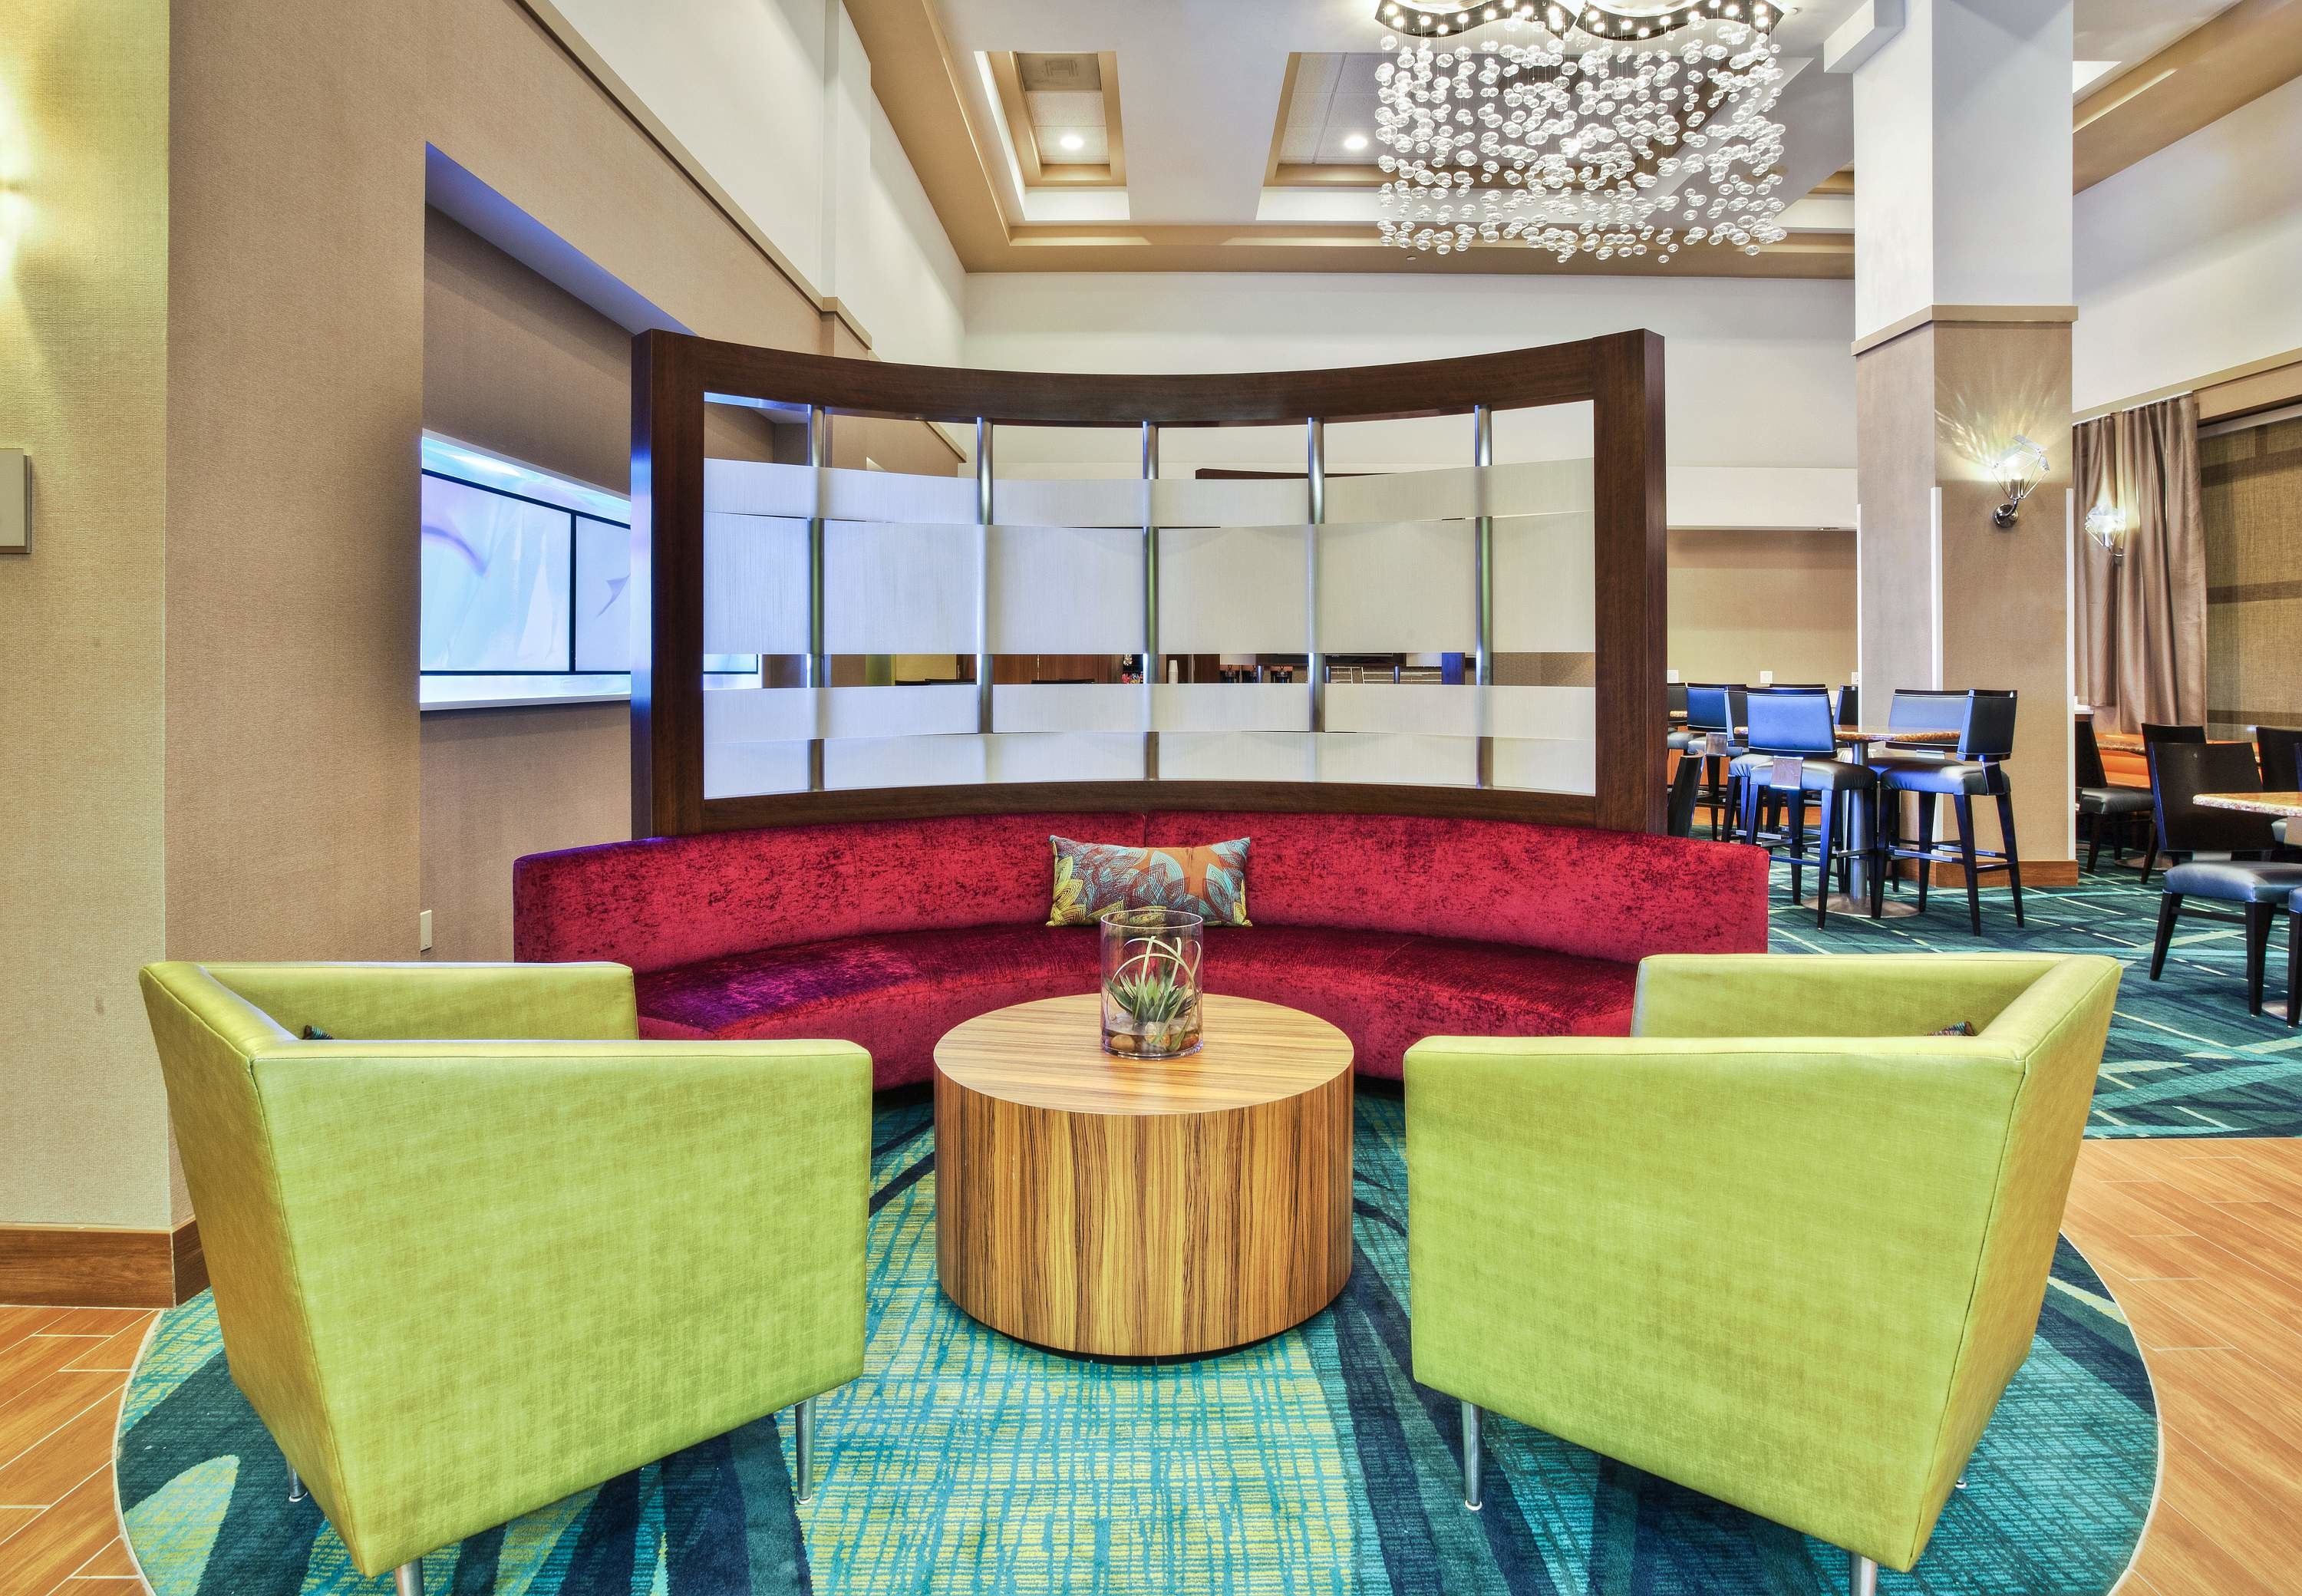 SpringHill Suites by Marriott Chicago Southwest at Burr Ridge/Hinsdale image 9